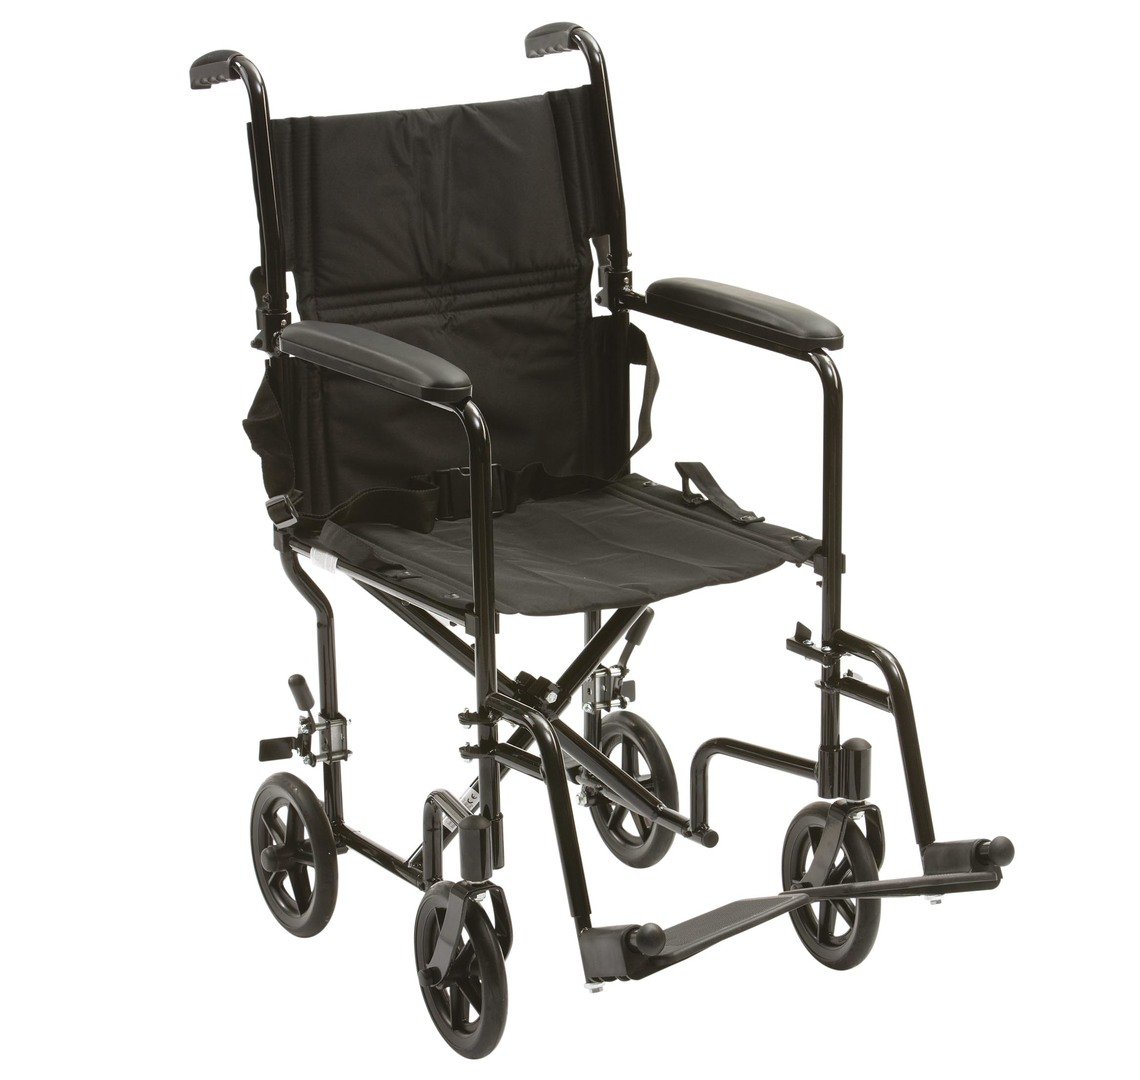 wheelchairs-and-accessories | travel-chair-range | Aluminium Travel Chair